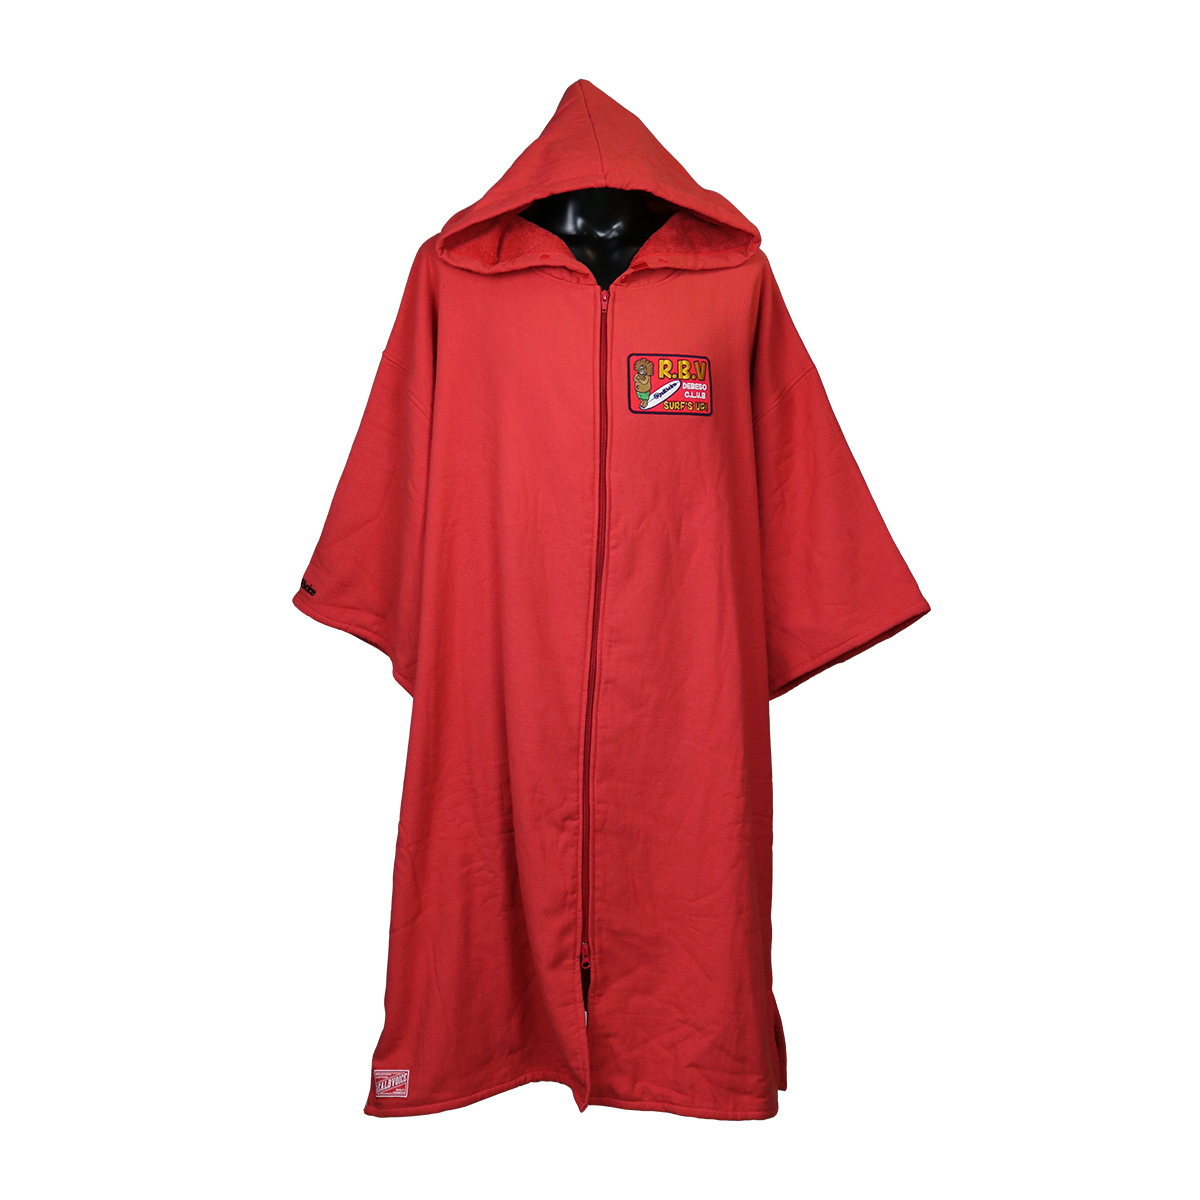 MADE IN JAPAN DEBESO R MARK PONCHO